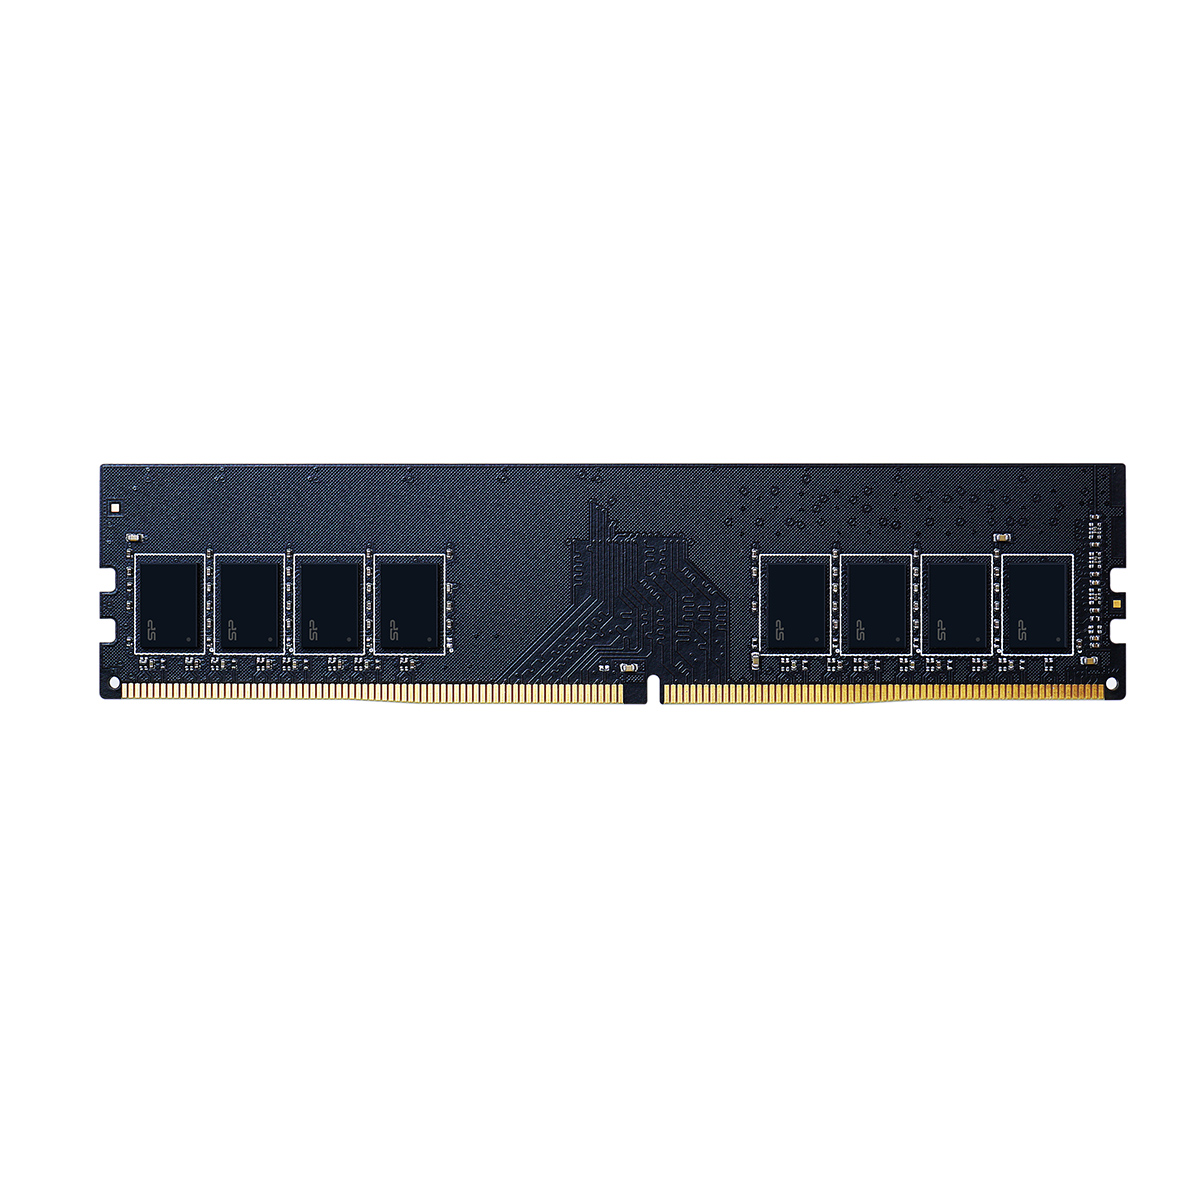 XPOWER AirCool <br> DDR4 Gaming UDIMM<br><font color='#888888' size='2%'>4133/3600/3200/3000/2666 </font>